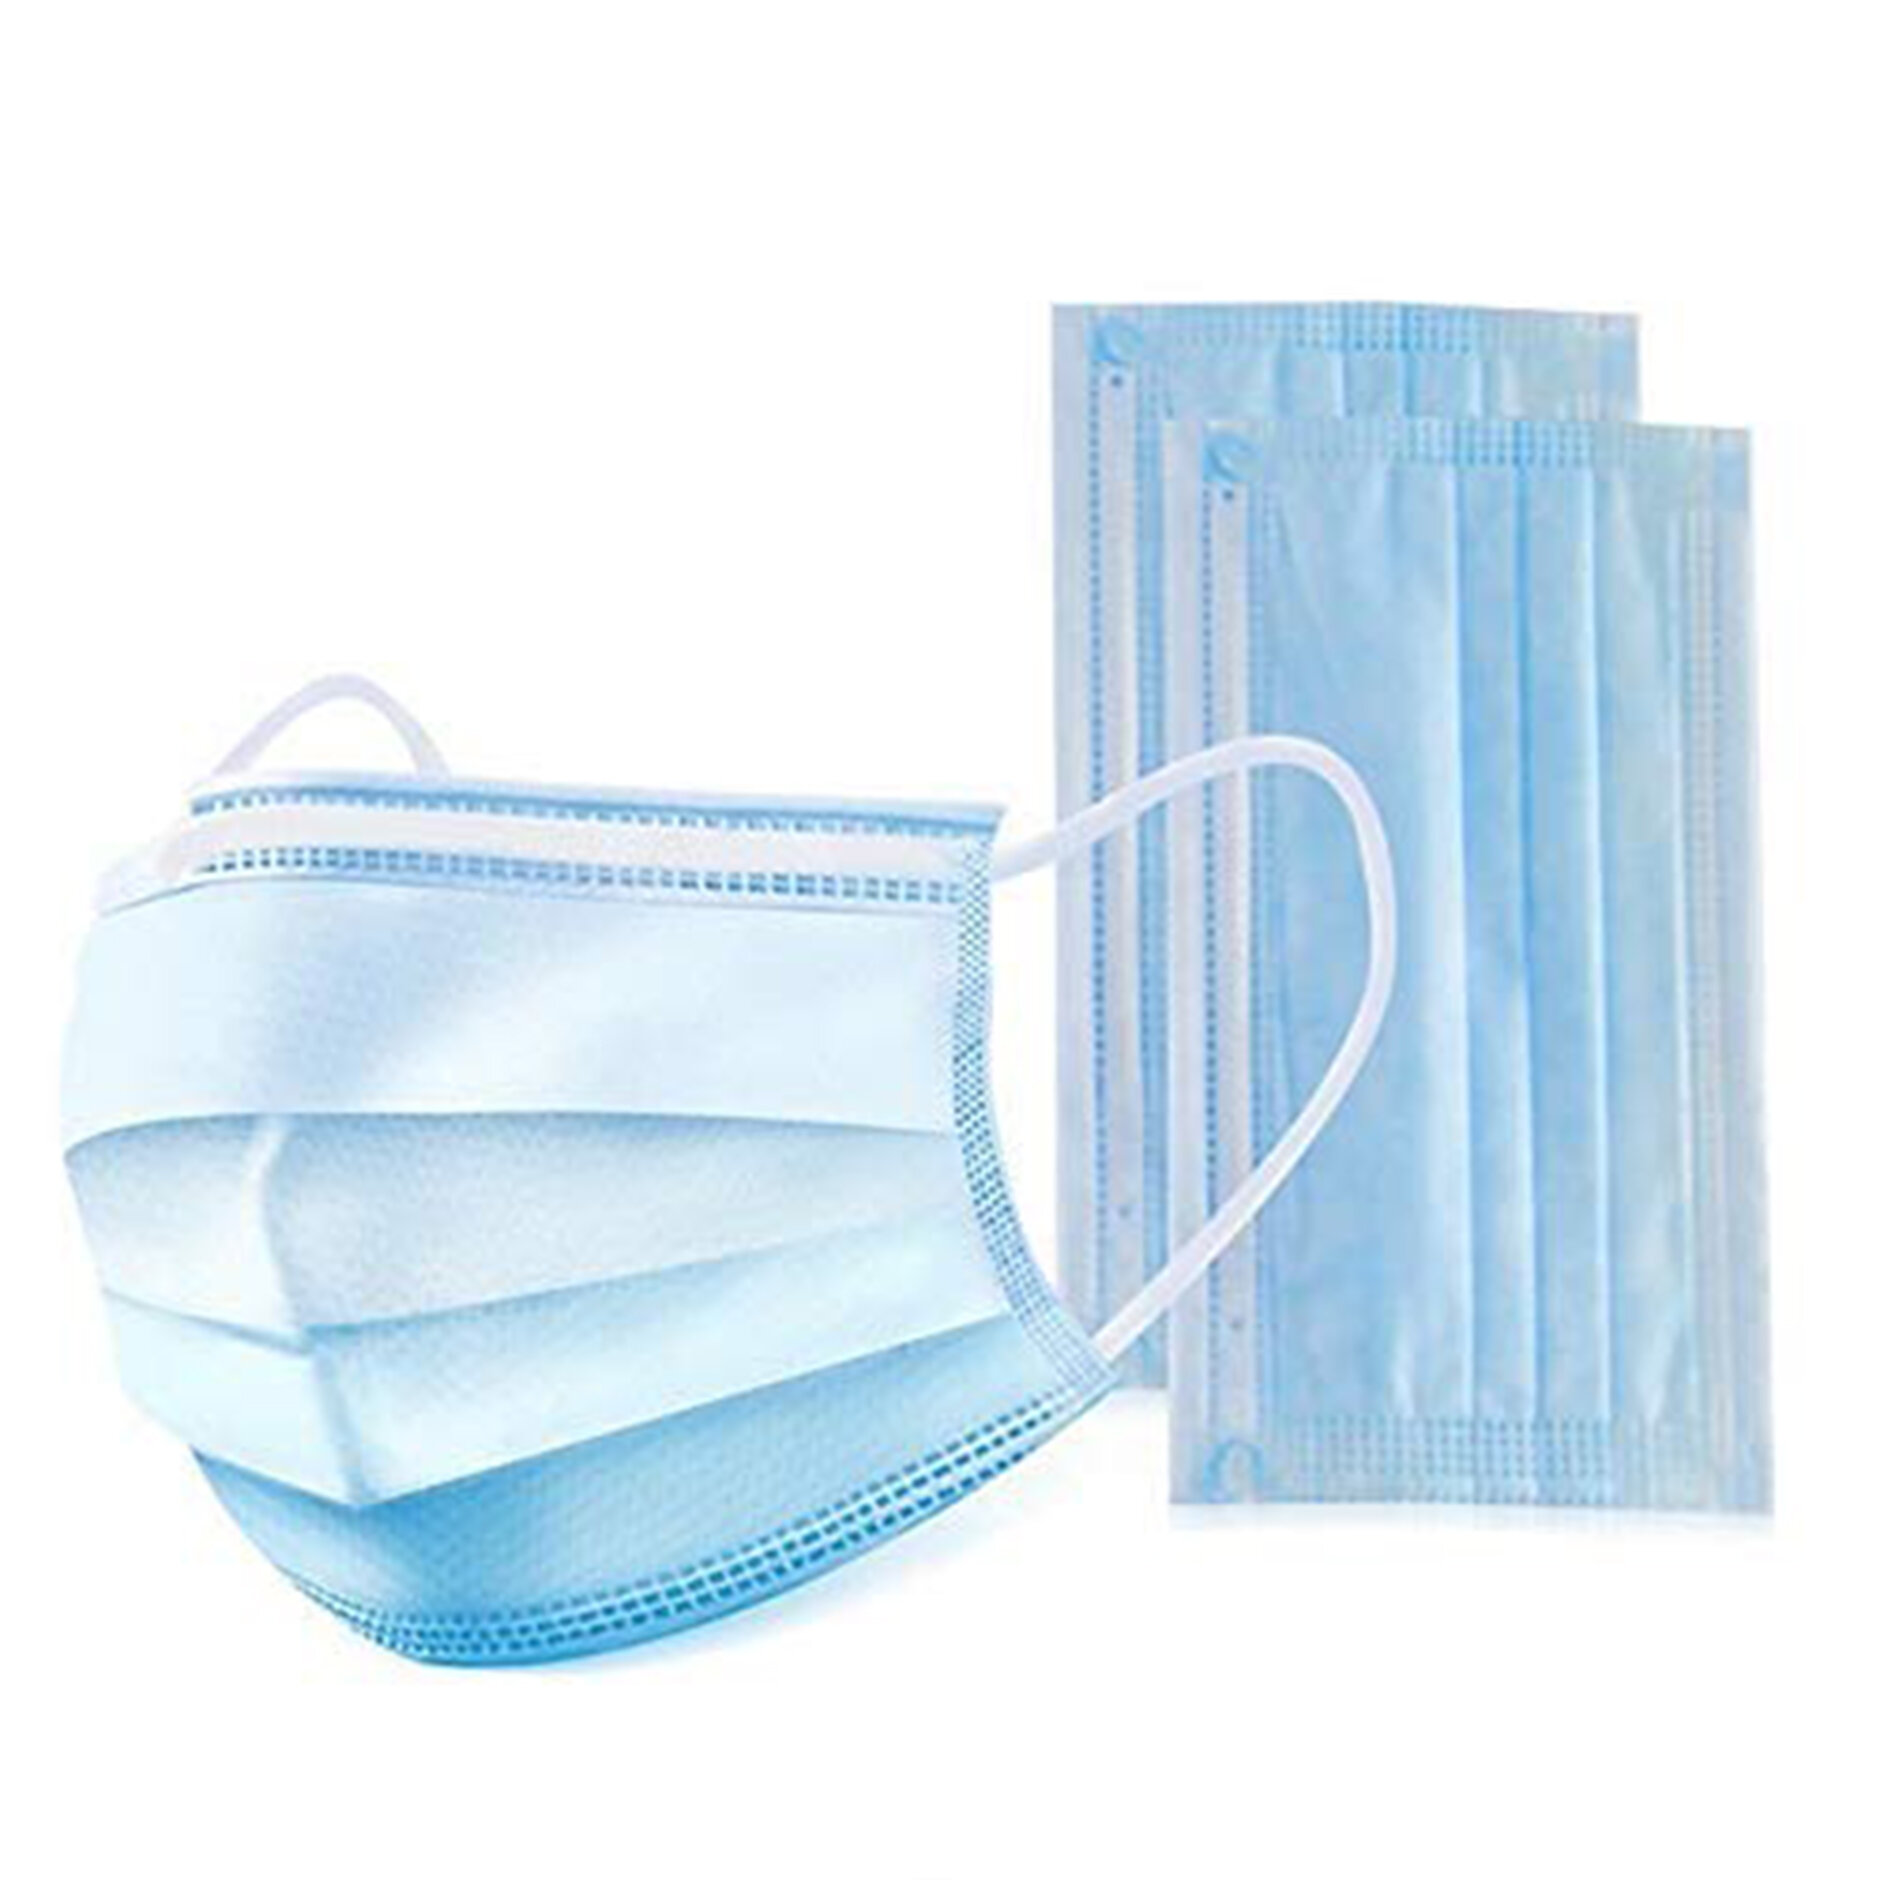 SURGICAL 3PLY FACE MASK (TYPE IIR)